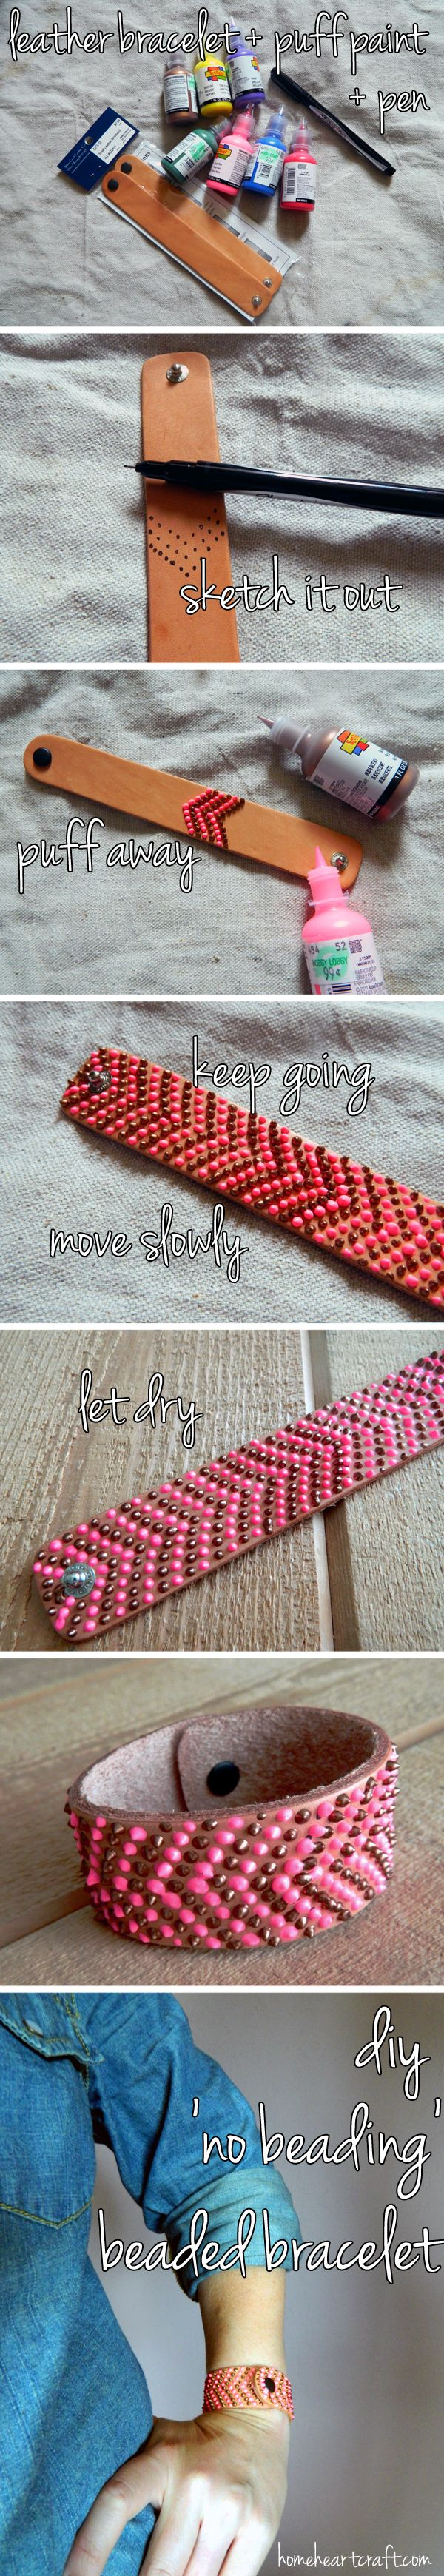 : Idea, Diy Crafts, Beaded Bracelets, Diy Jewelry, Beading Indian, Puff Paint